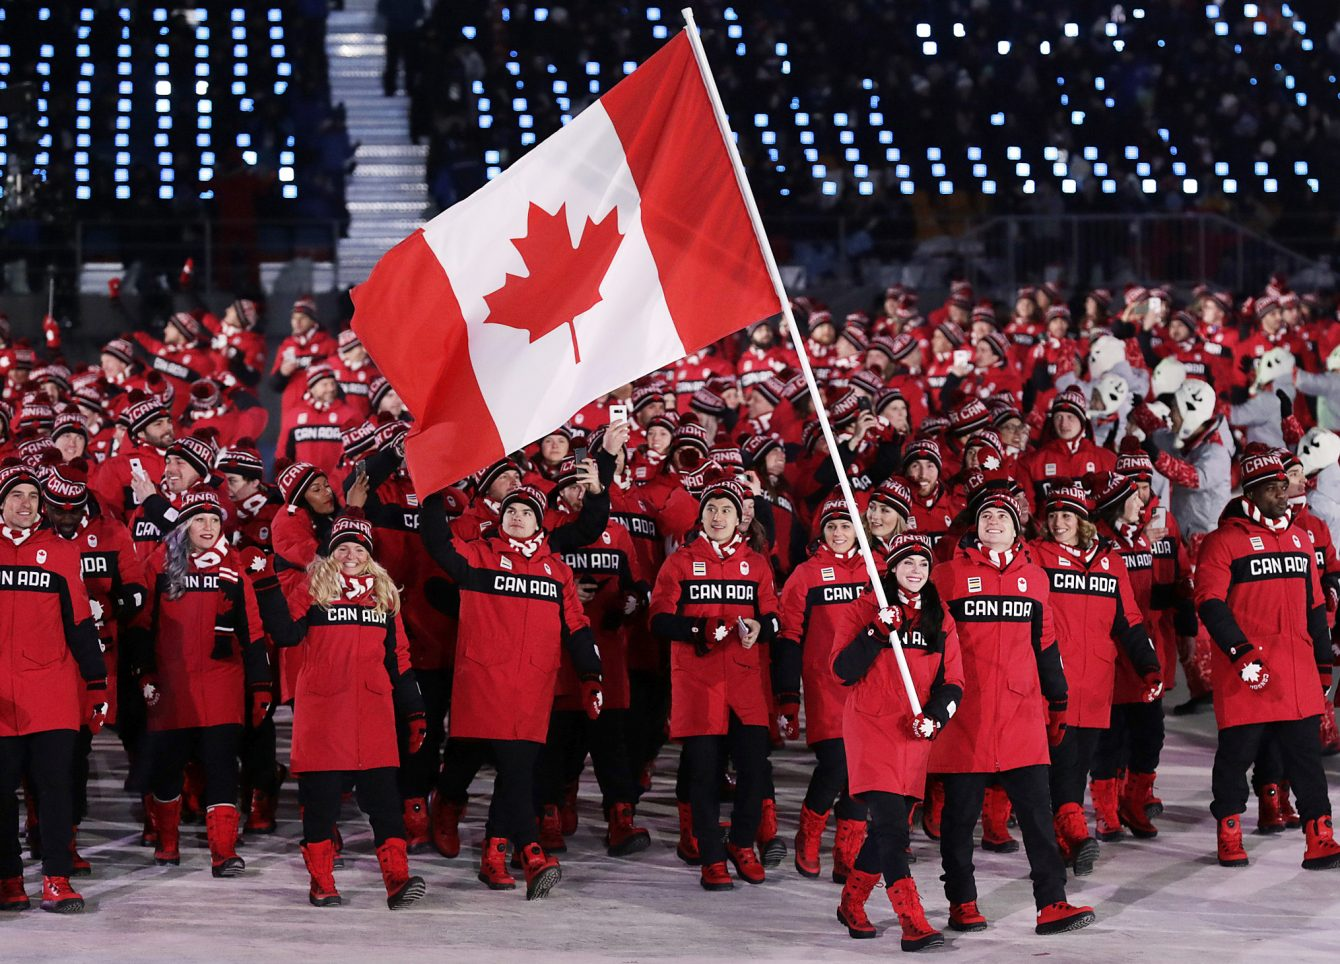 Team Canada Marching in the 2018 PyeongChang Winter Games